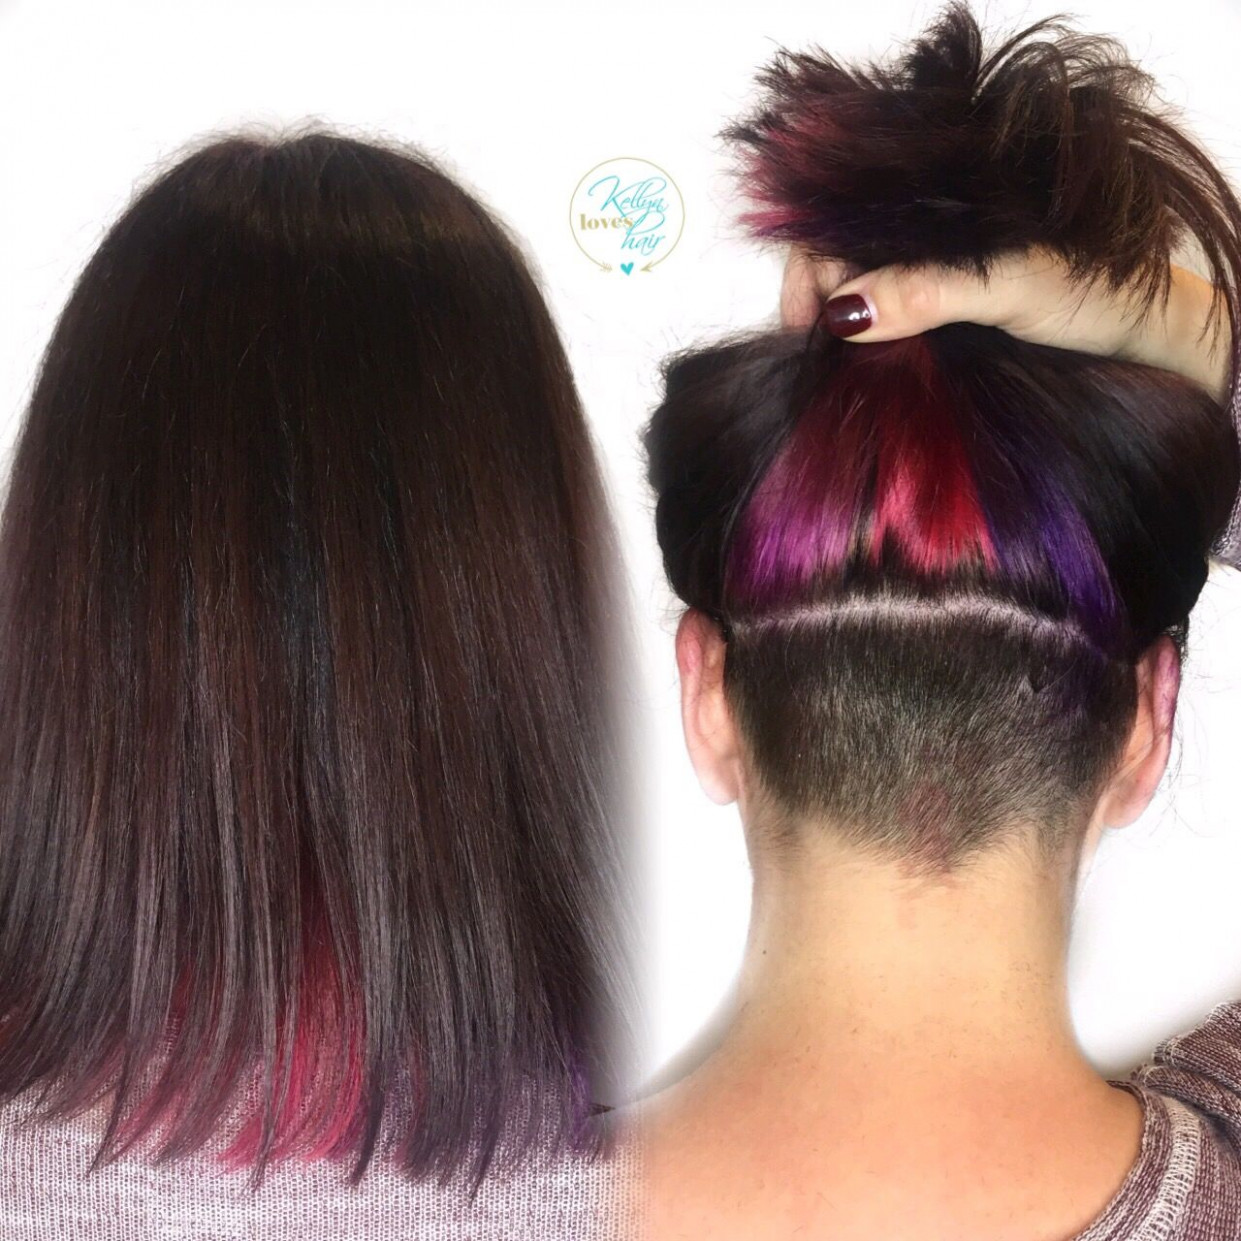 Underlights, hidden rainbow, pink, red, purple hair color, hidden